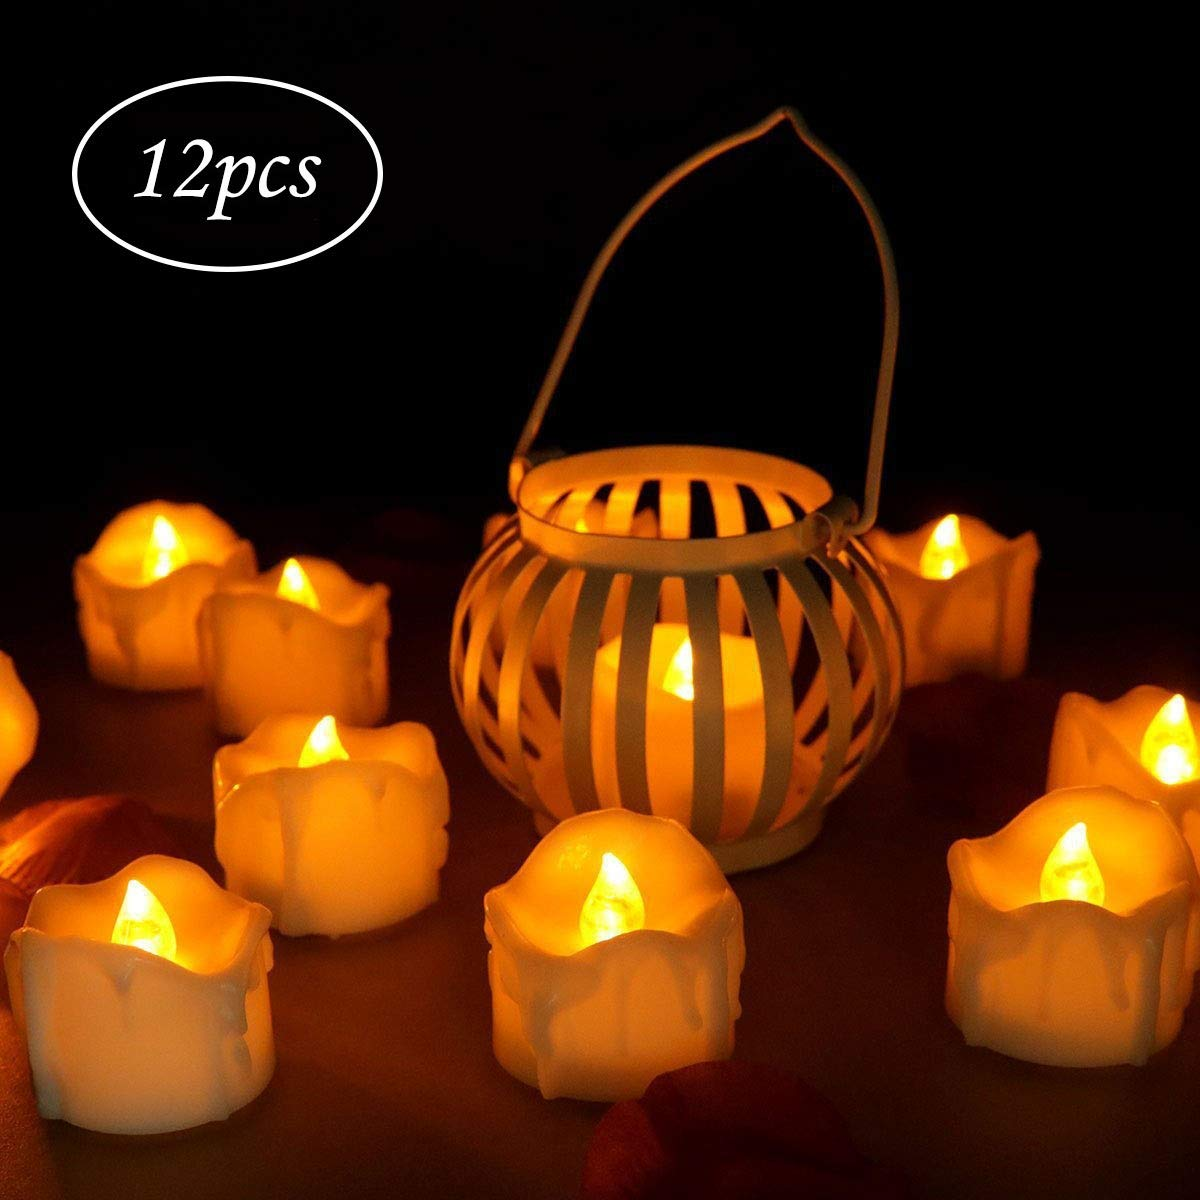 Battery Operated LED Tealights, KKTICK Flameless Tealight Candles with Timer, Fake Candles Flickering Lights for Wedding Birthday Christmas Party Celebration, 12 Pack